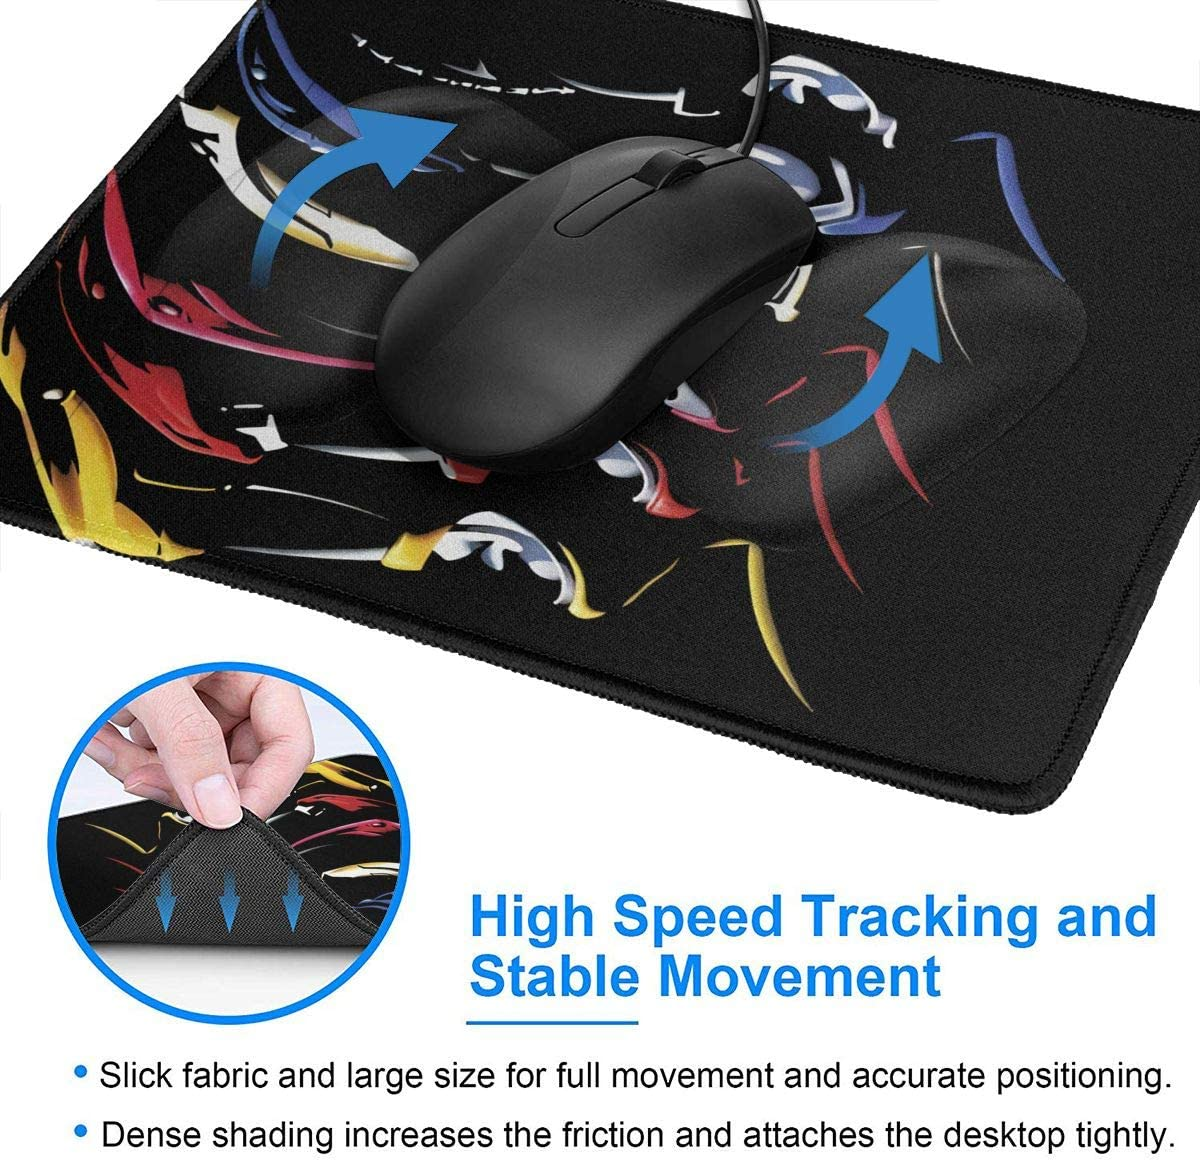 Laptop Wehoiweh Mighty Morphin Power Rangers Mouse Pads for Computers Office /& Home,Multiple Sizes